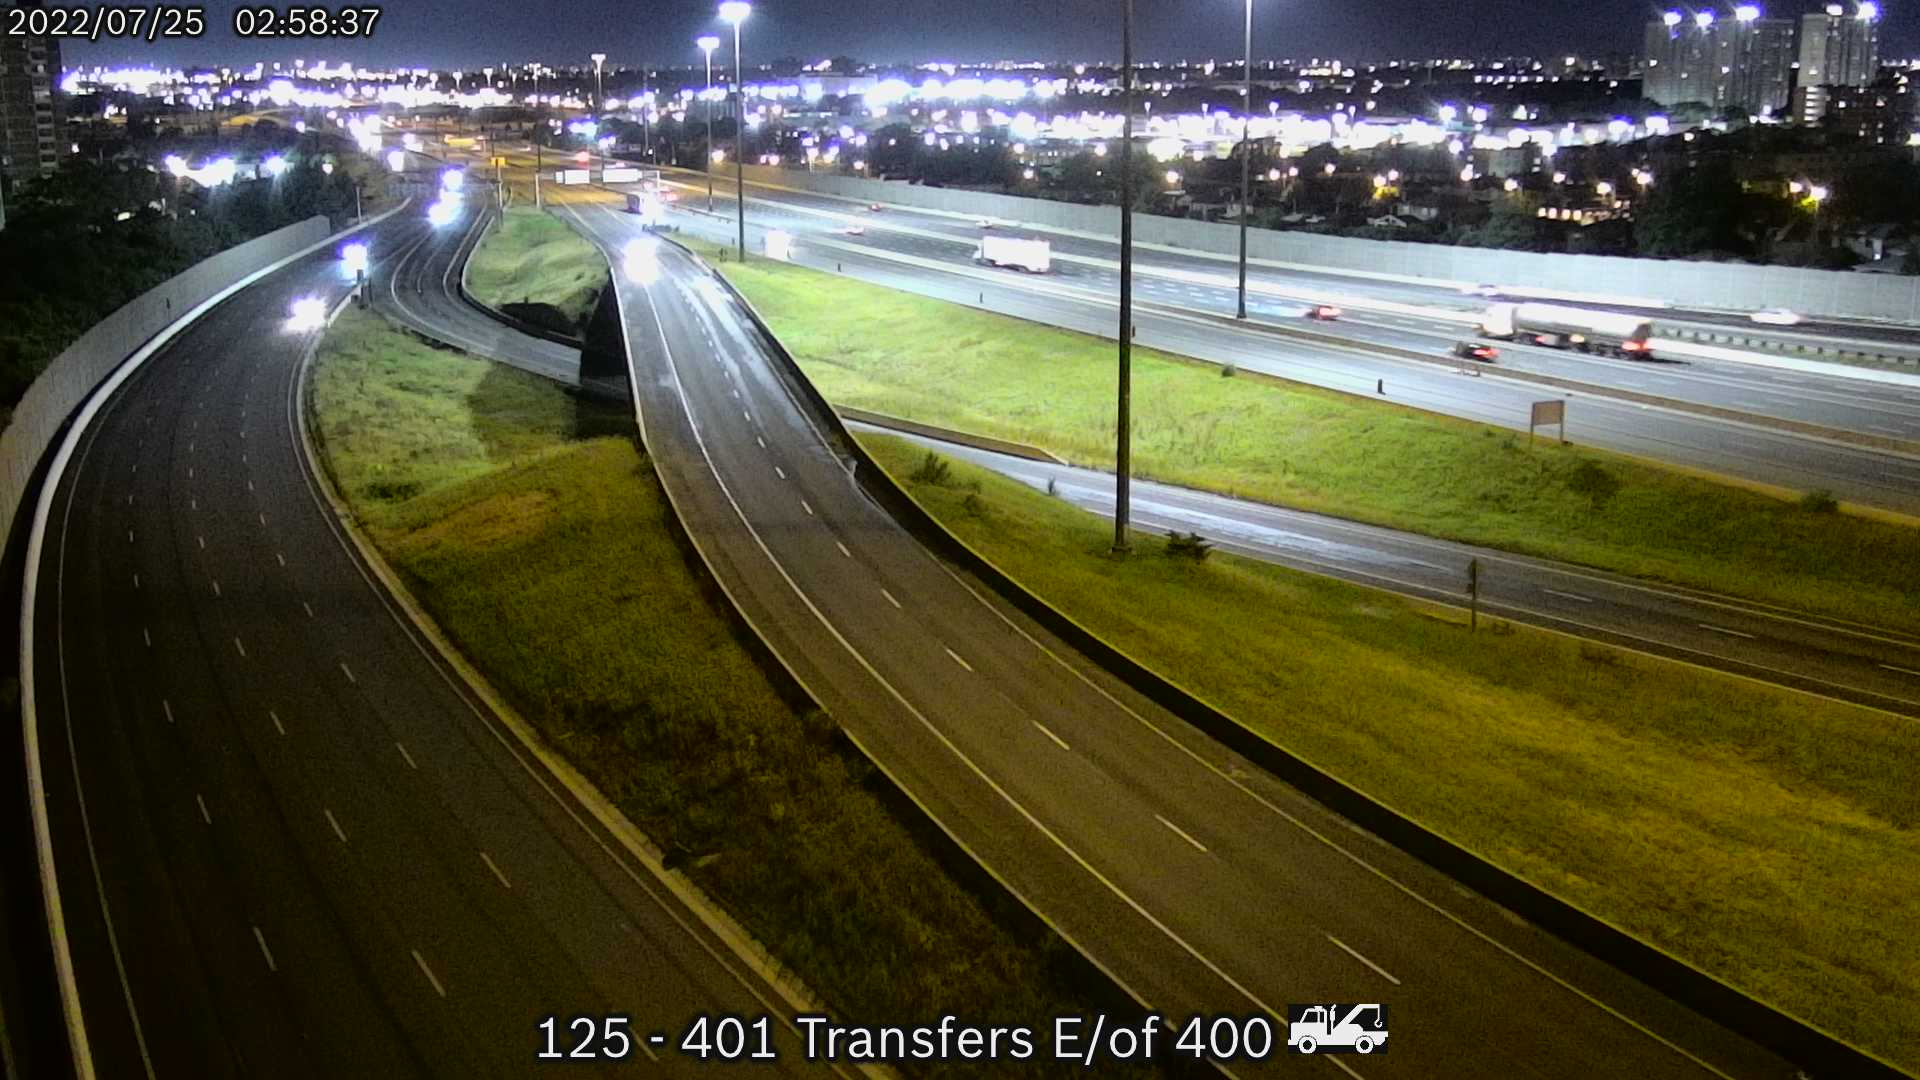 Webcam of Highway 401 near Dufferin Street courtesy of the MTO